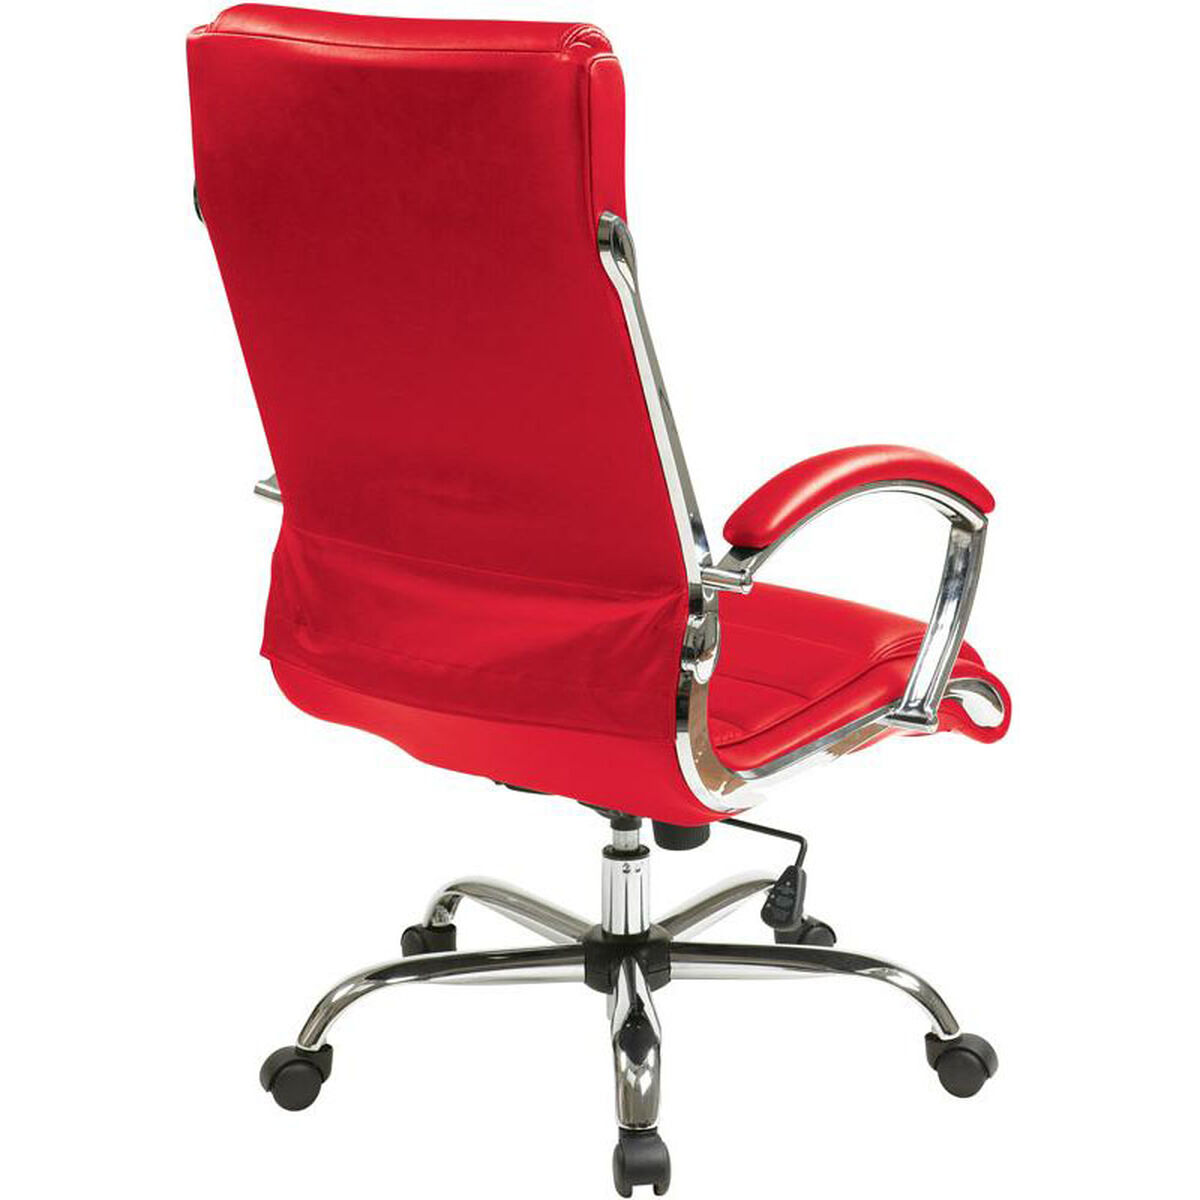 Our Work Smart Faux Leather Executive Office Chair With Thick Padded Seat Red Is On